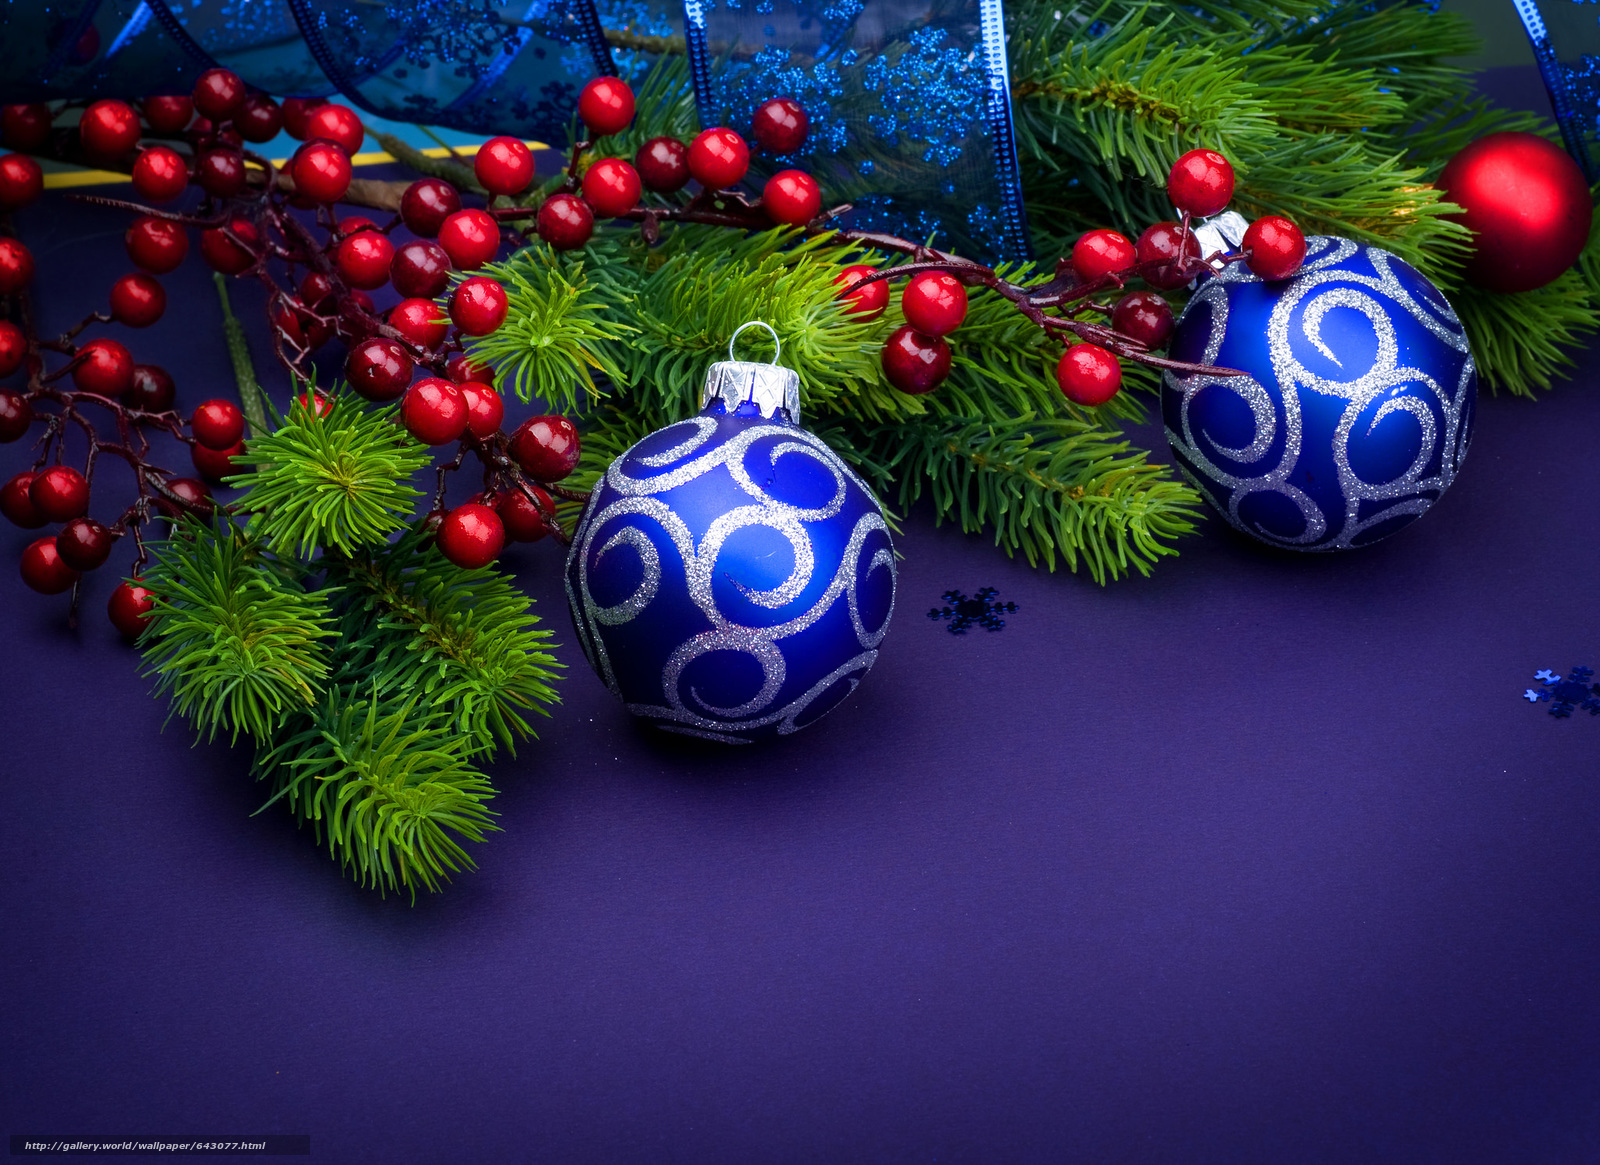 Download wallpaper New Year,  Christmas Wallpaper,  Christmas,  holiday free desktop wallpaper in the resolution 2048x1491 — picture №643077